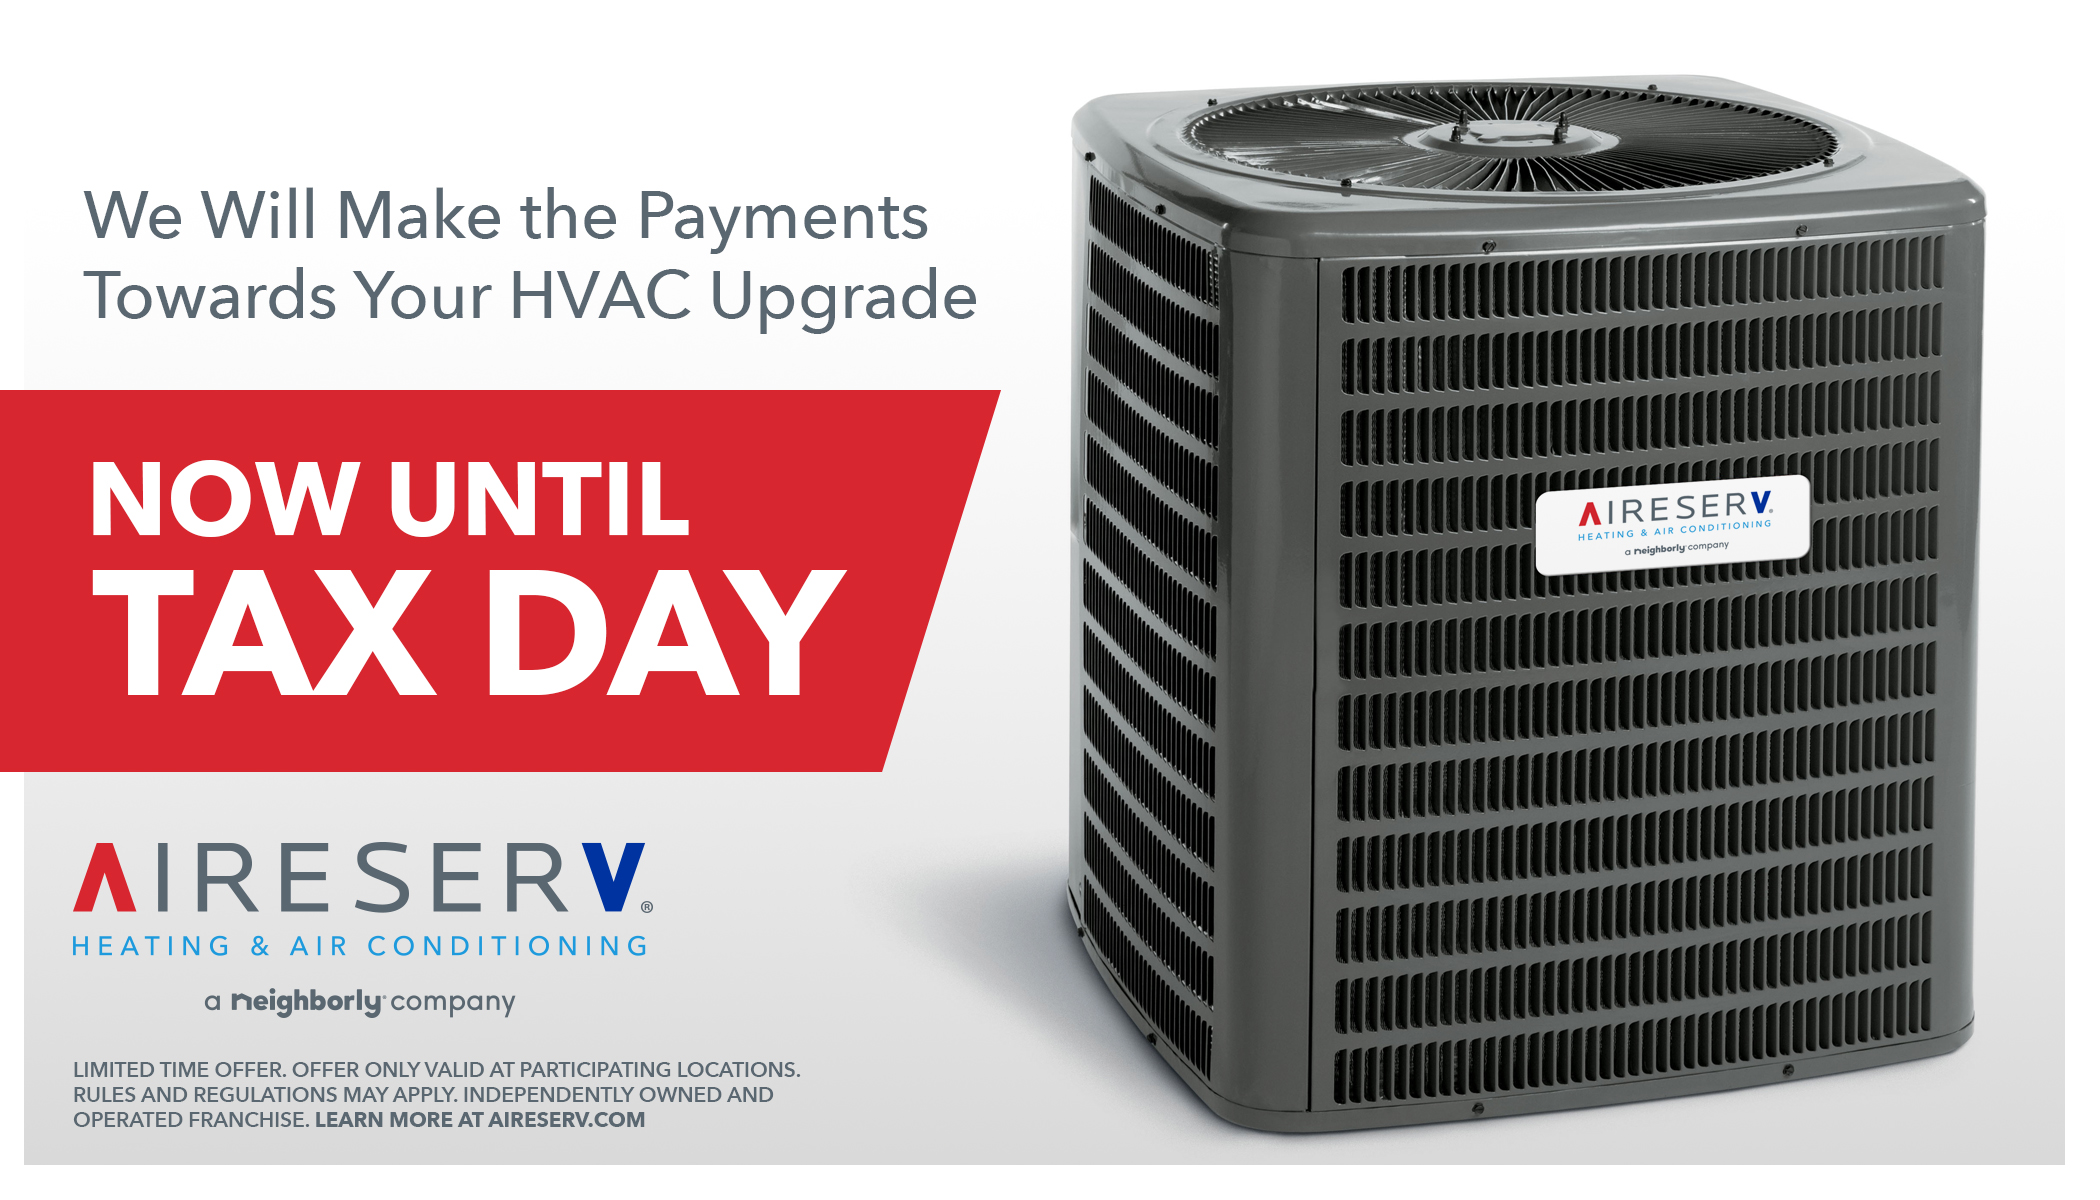 We will make the Payments Towards your HVAC Upgrade now until Tax Day